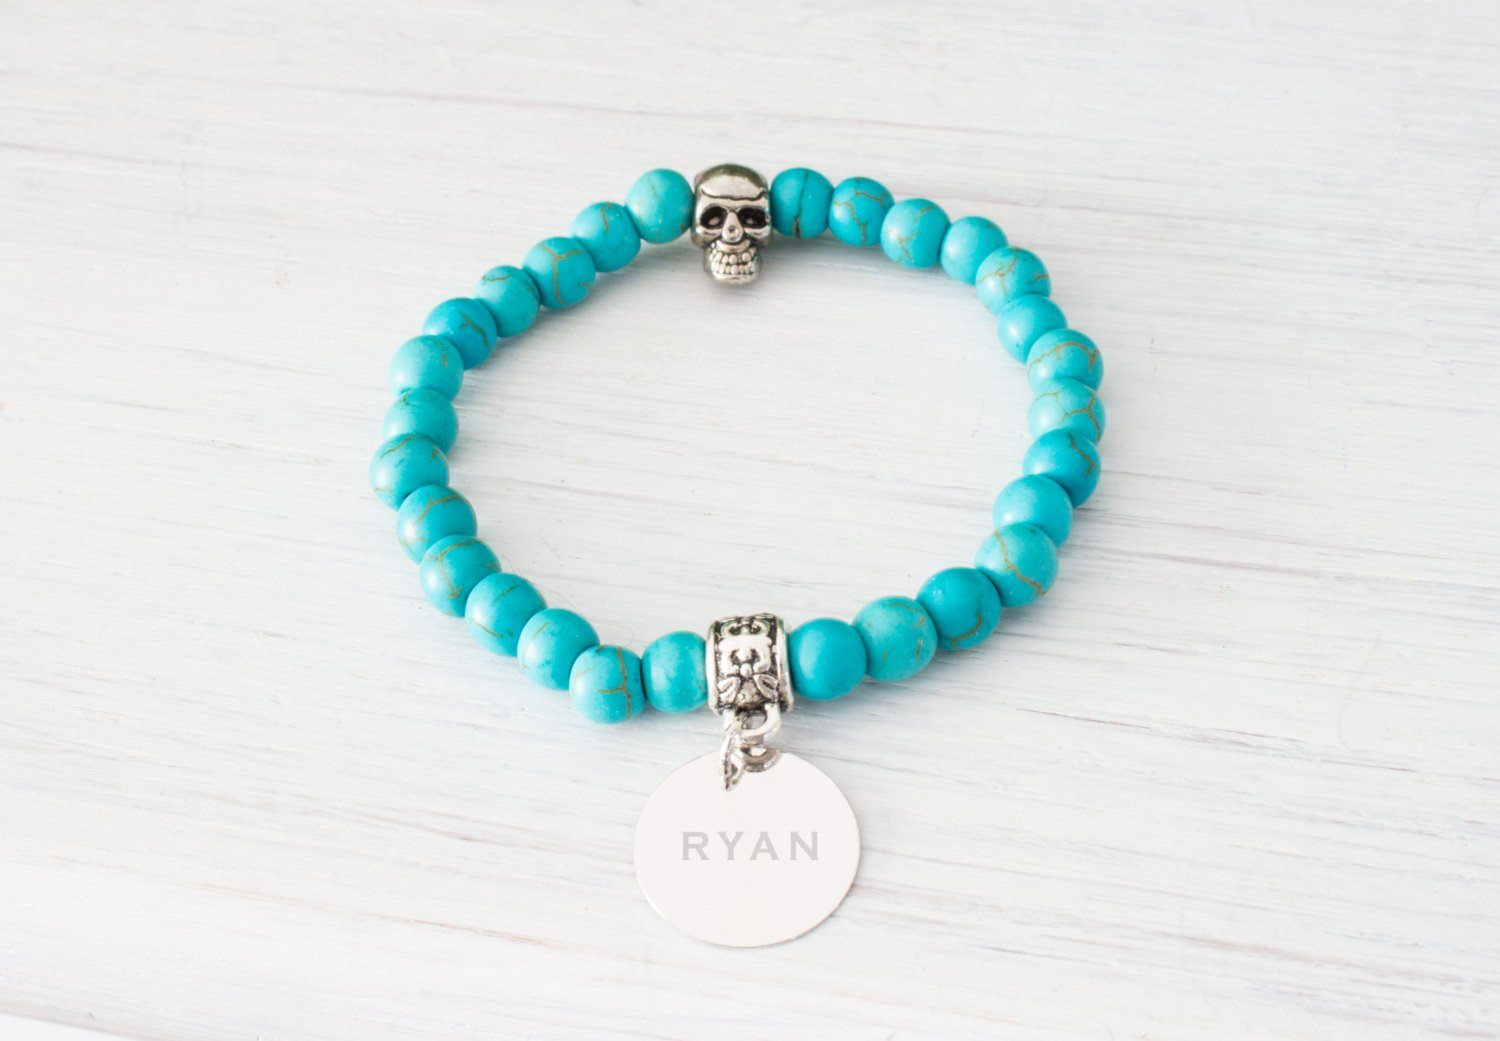 Personalized Engraved Blue Bracelet, Turquoise Stones, Monogram Initial Bracelet - product_type] - Beautiz